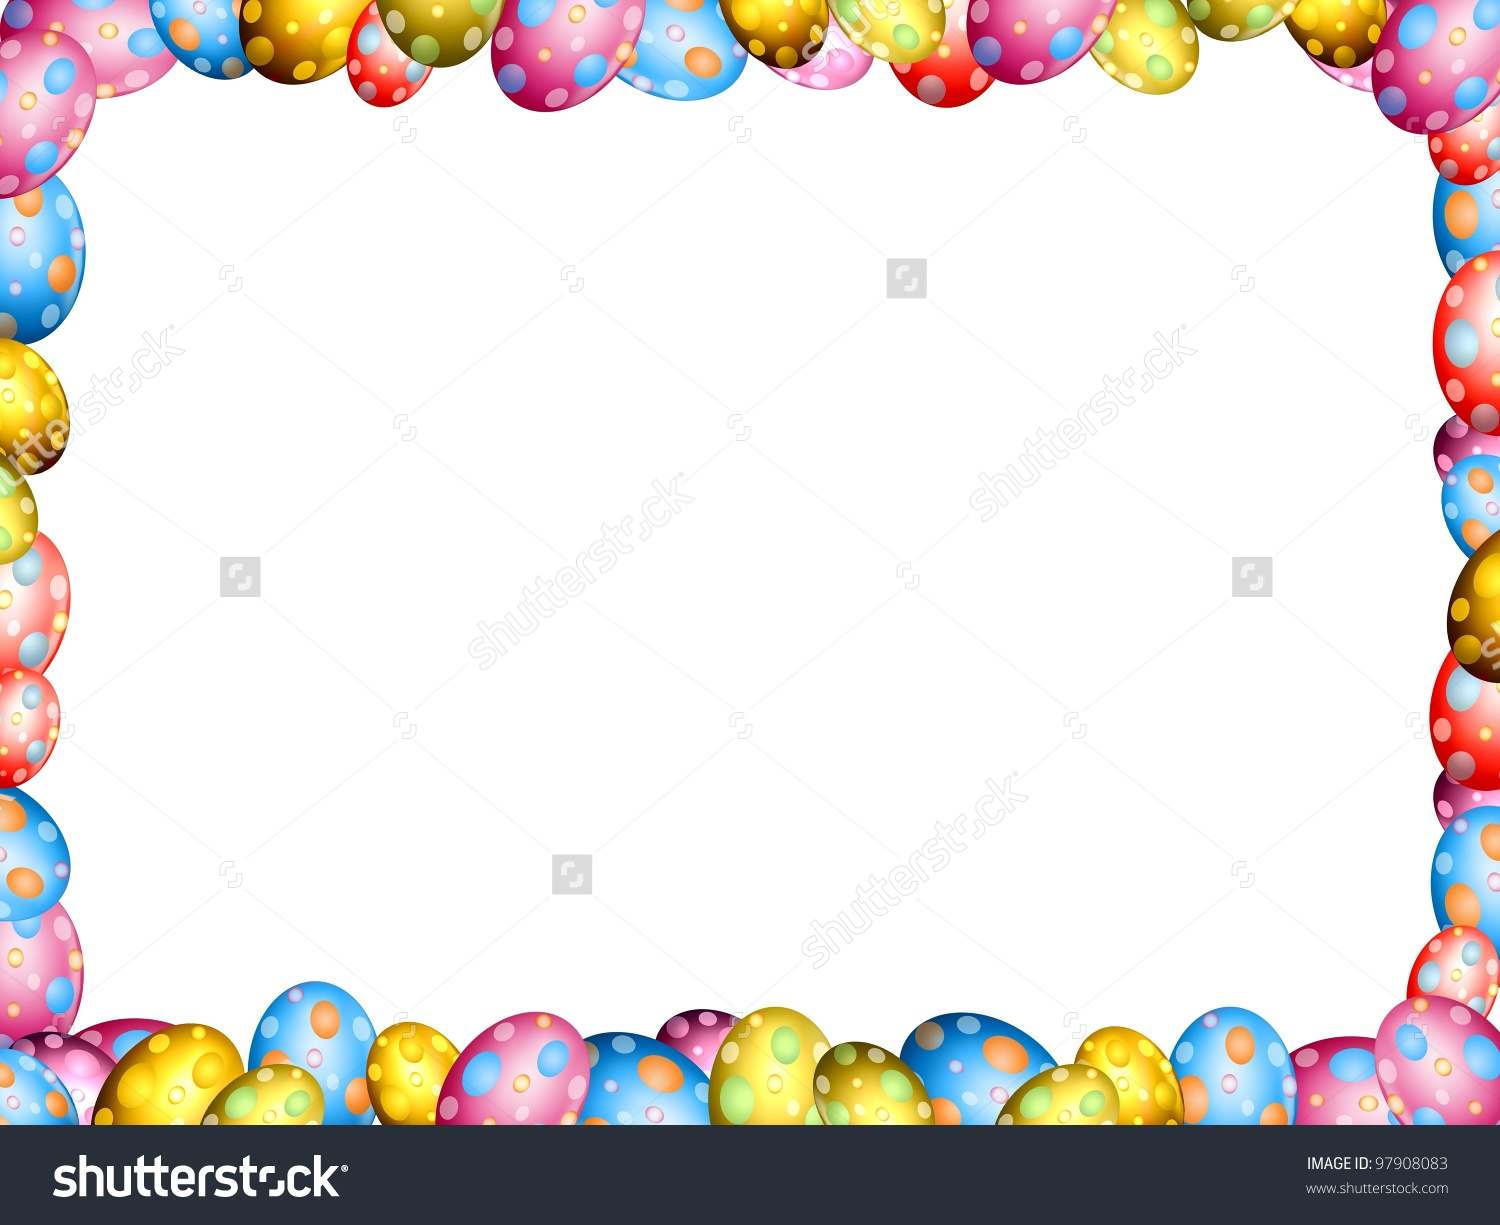 Easter egg clipart frame clipart transparent Easter Eggs Border Frame Illustration Stock Illustration 97908083 ... clipart transparent